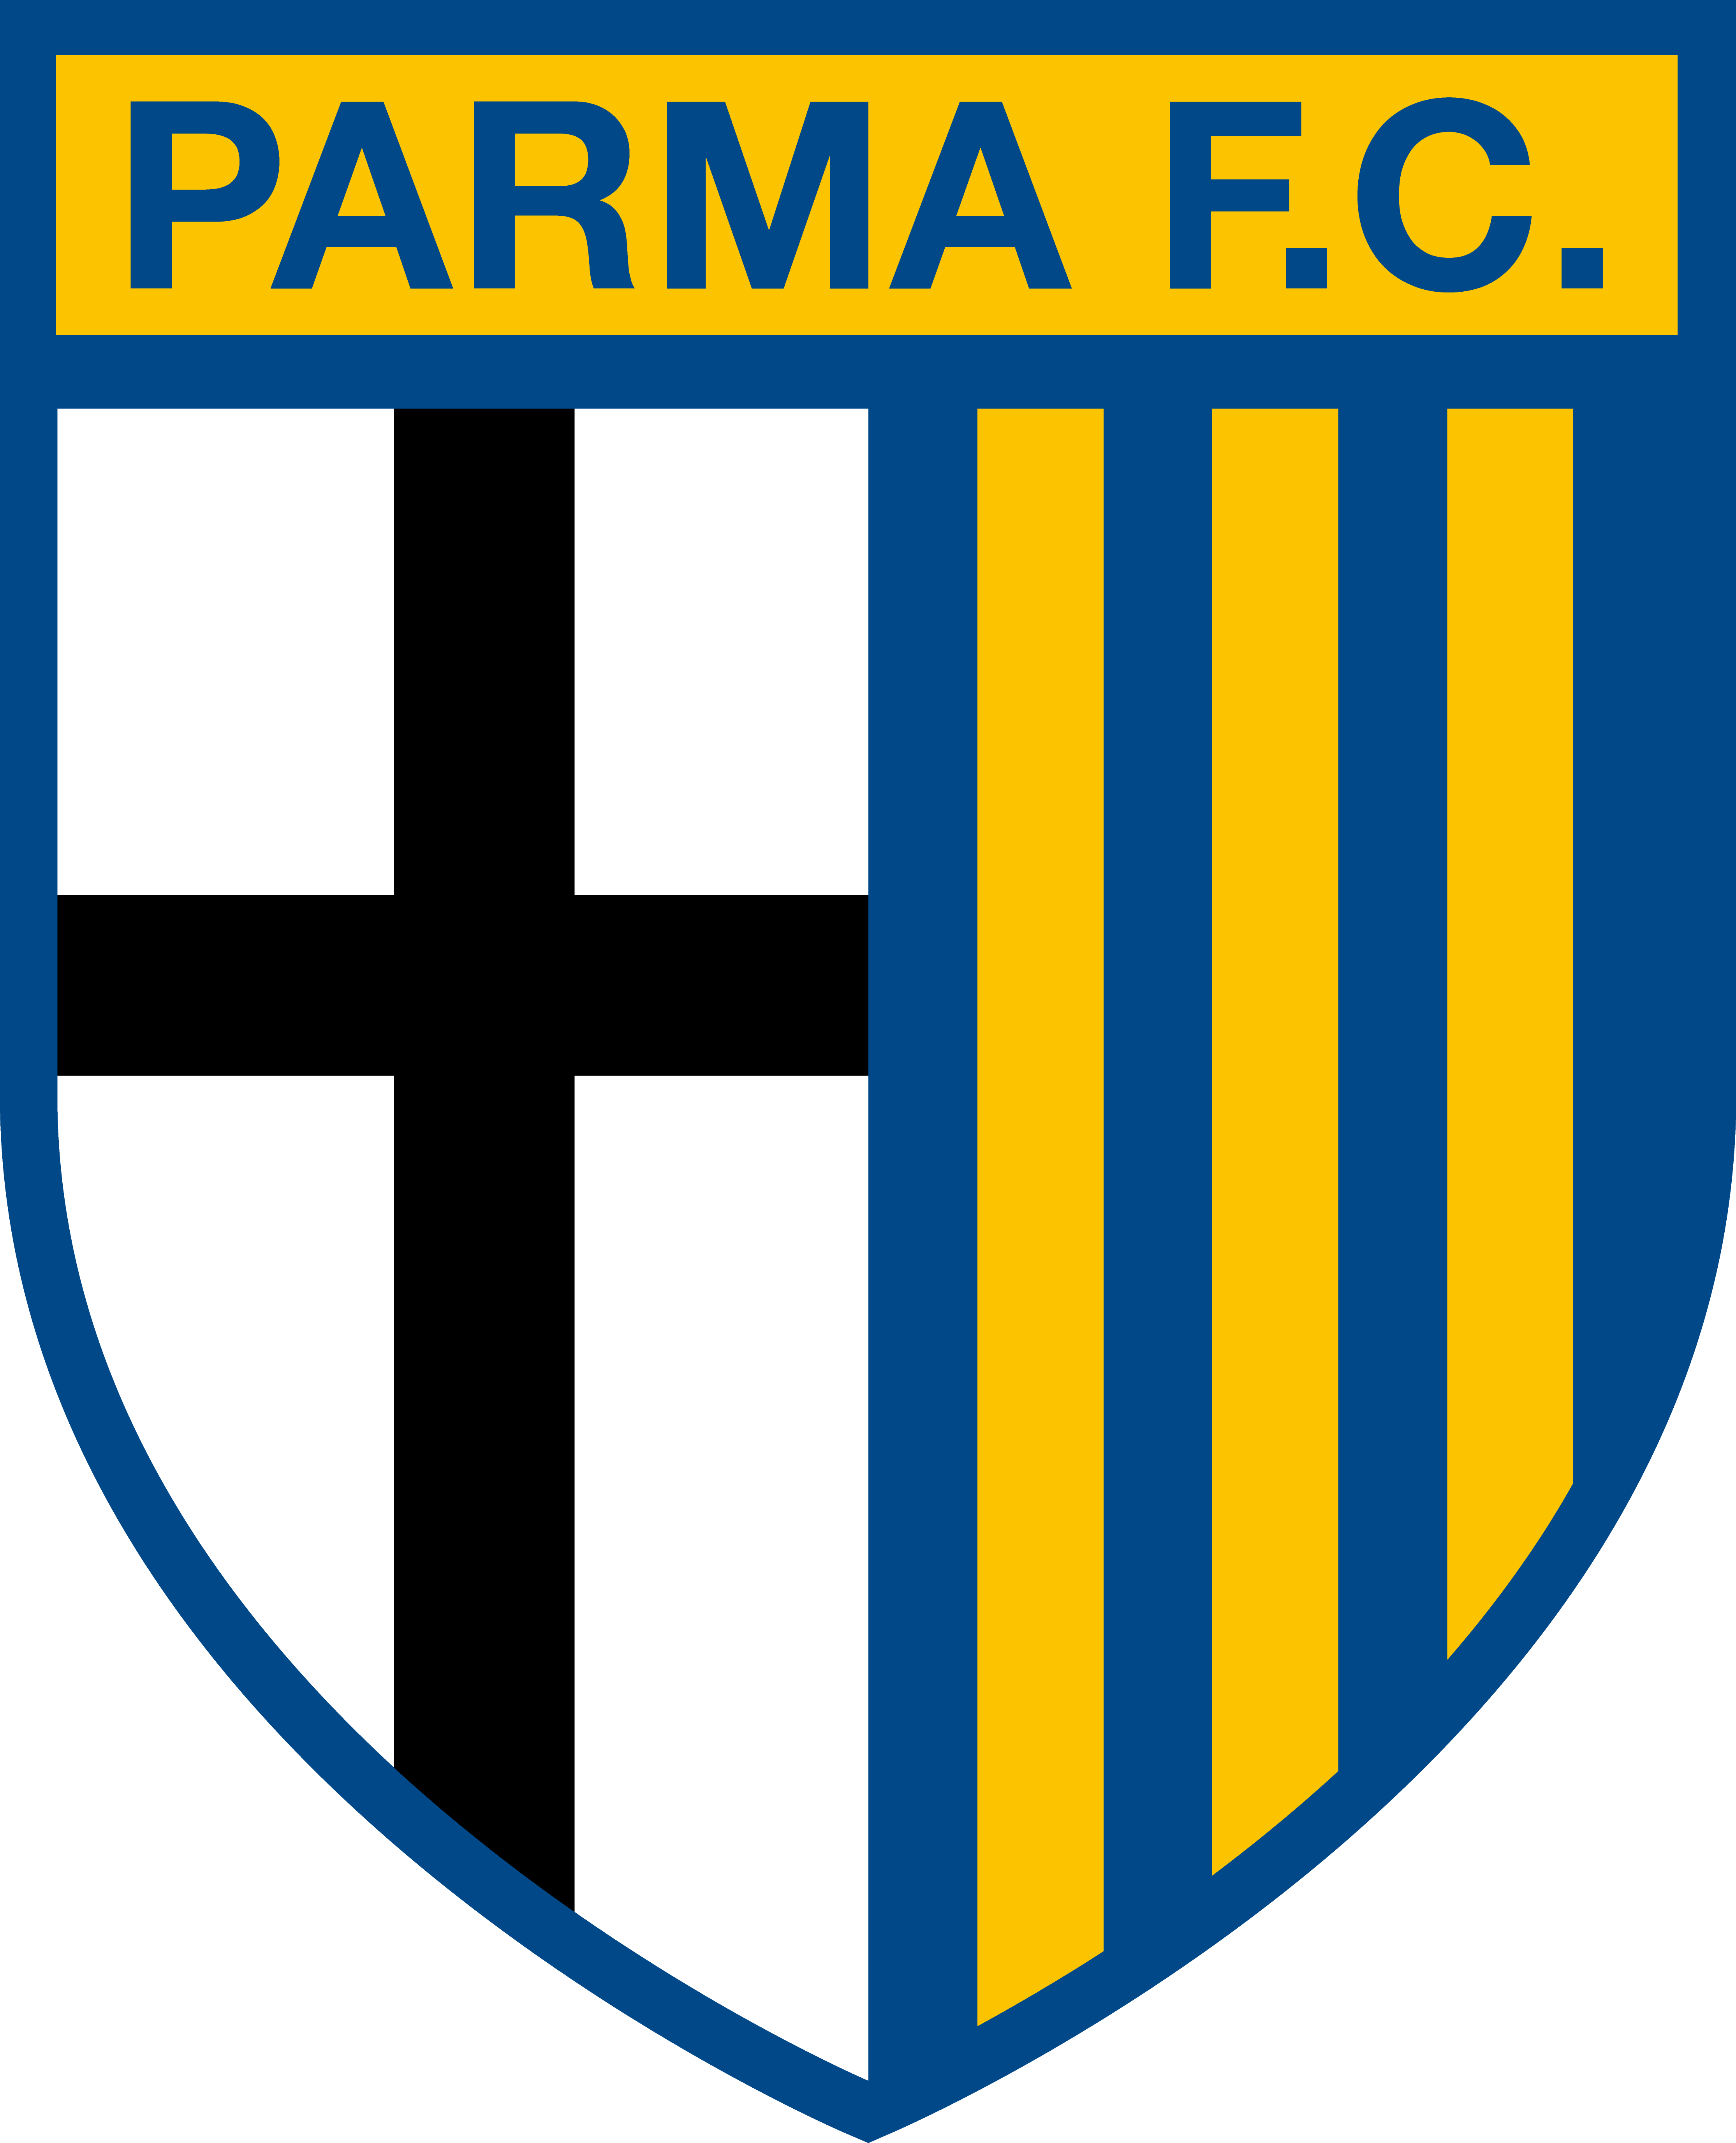 Stemma del Parma (from Wikipedia)